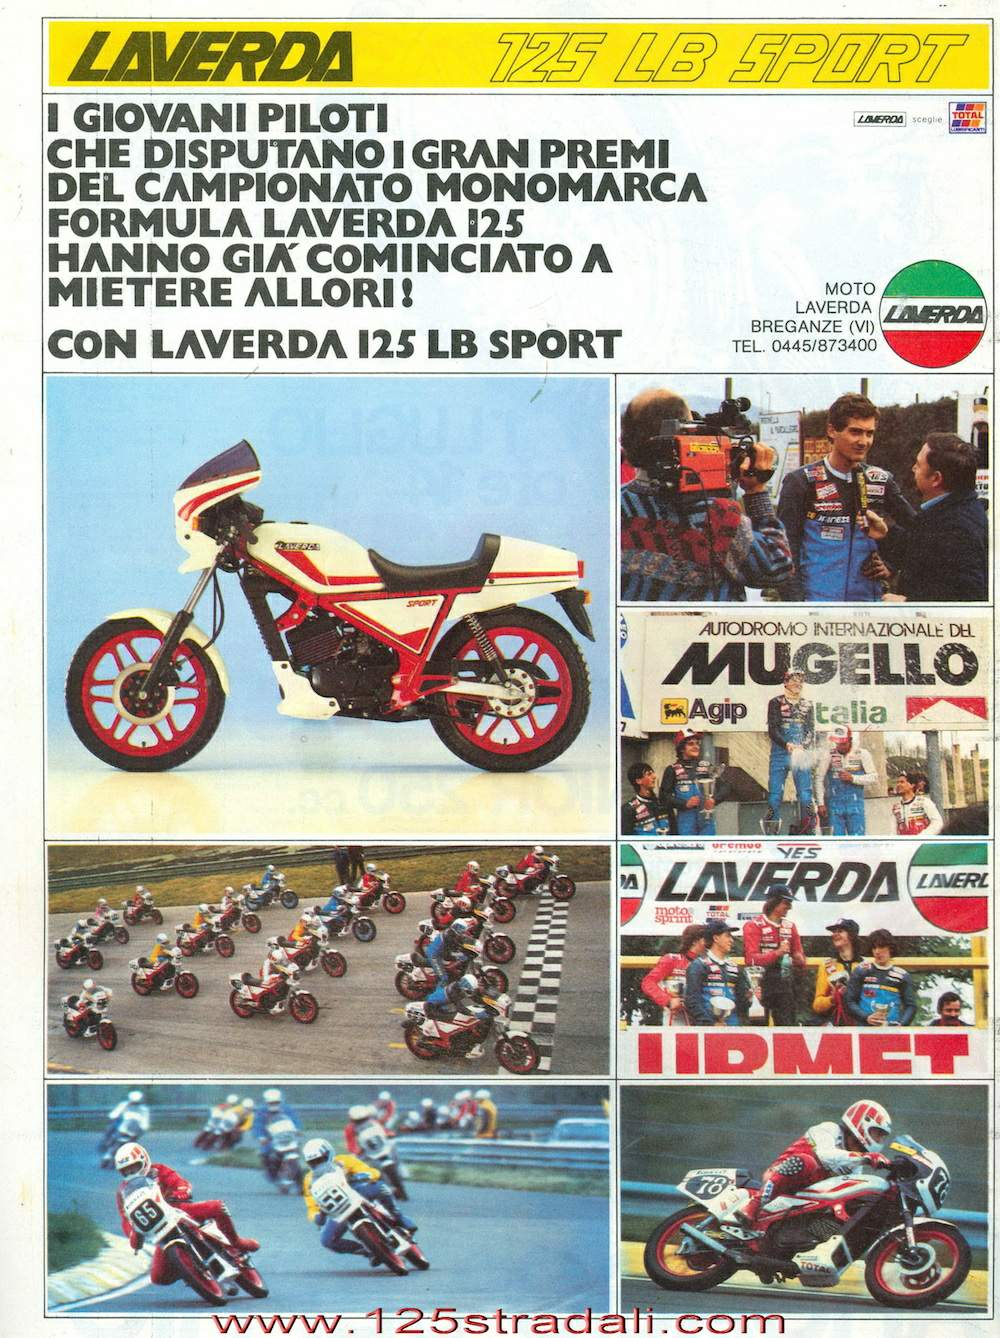 Laverda LB 125 Trofeo For Sale Specifications, Price and Images